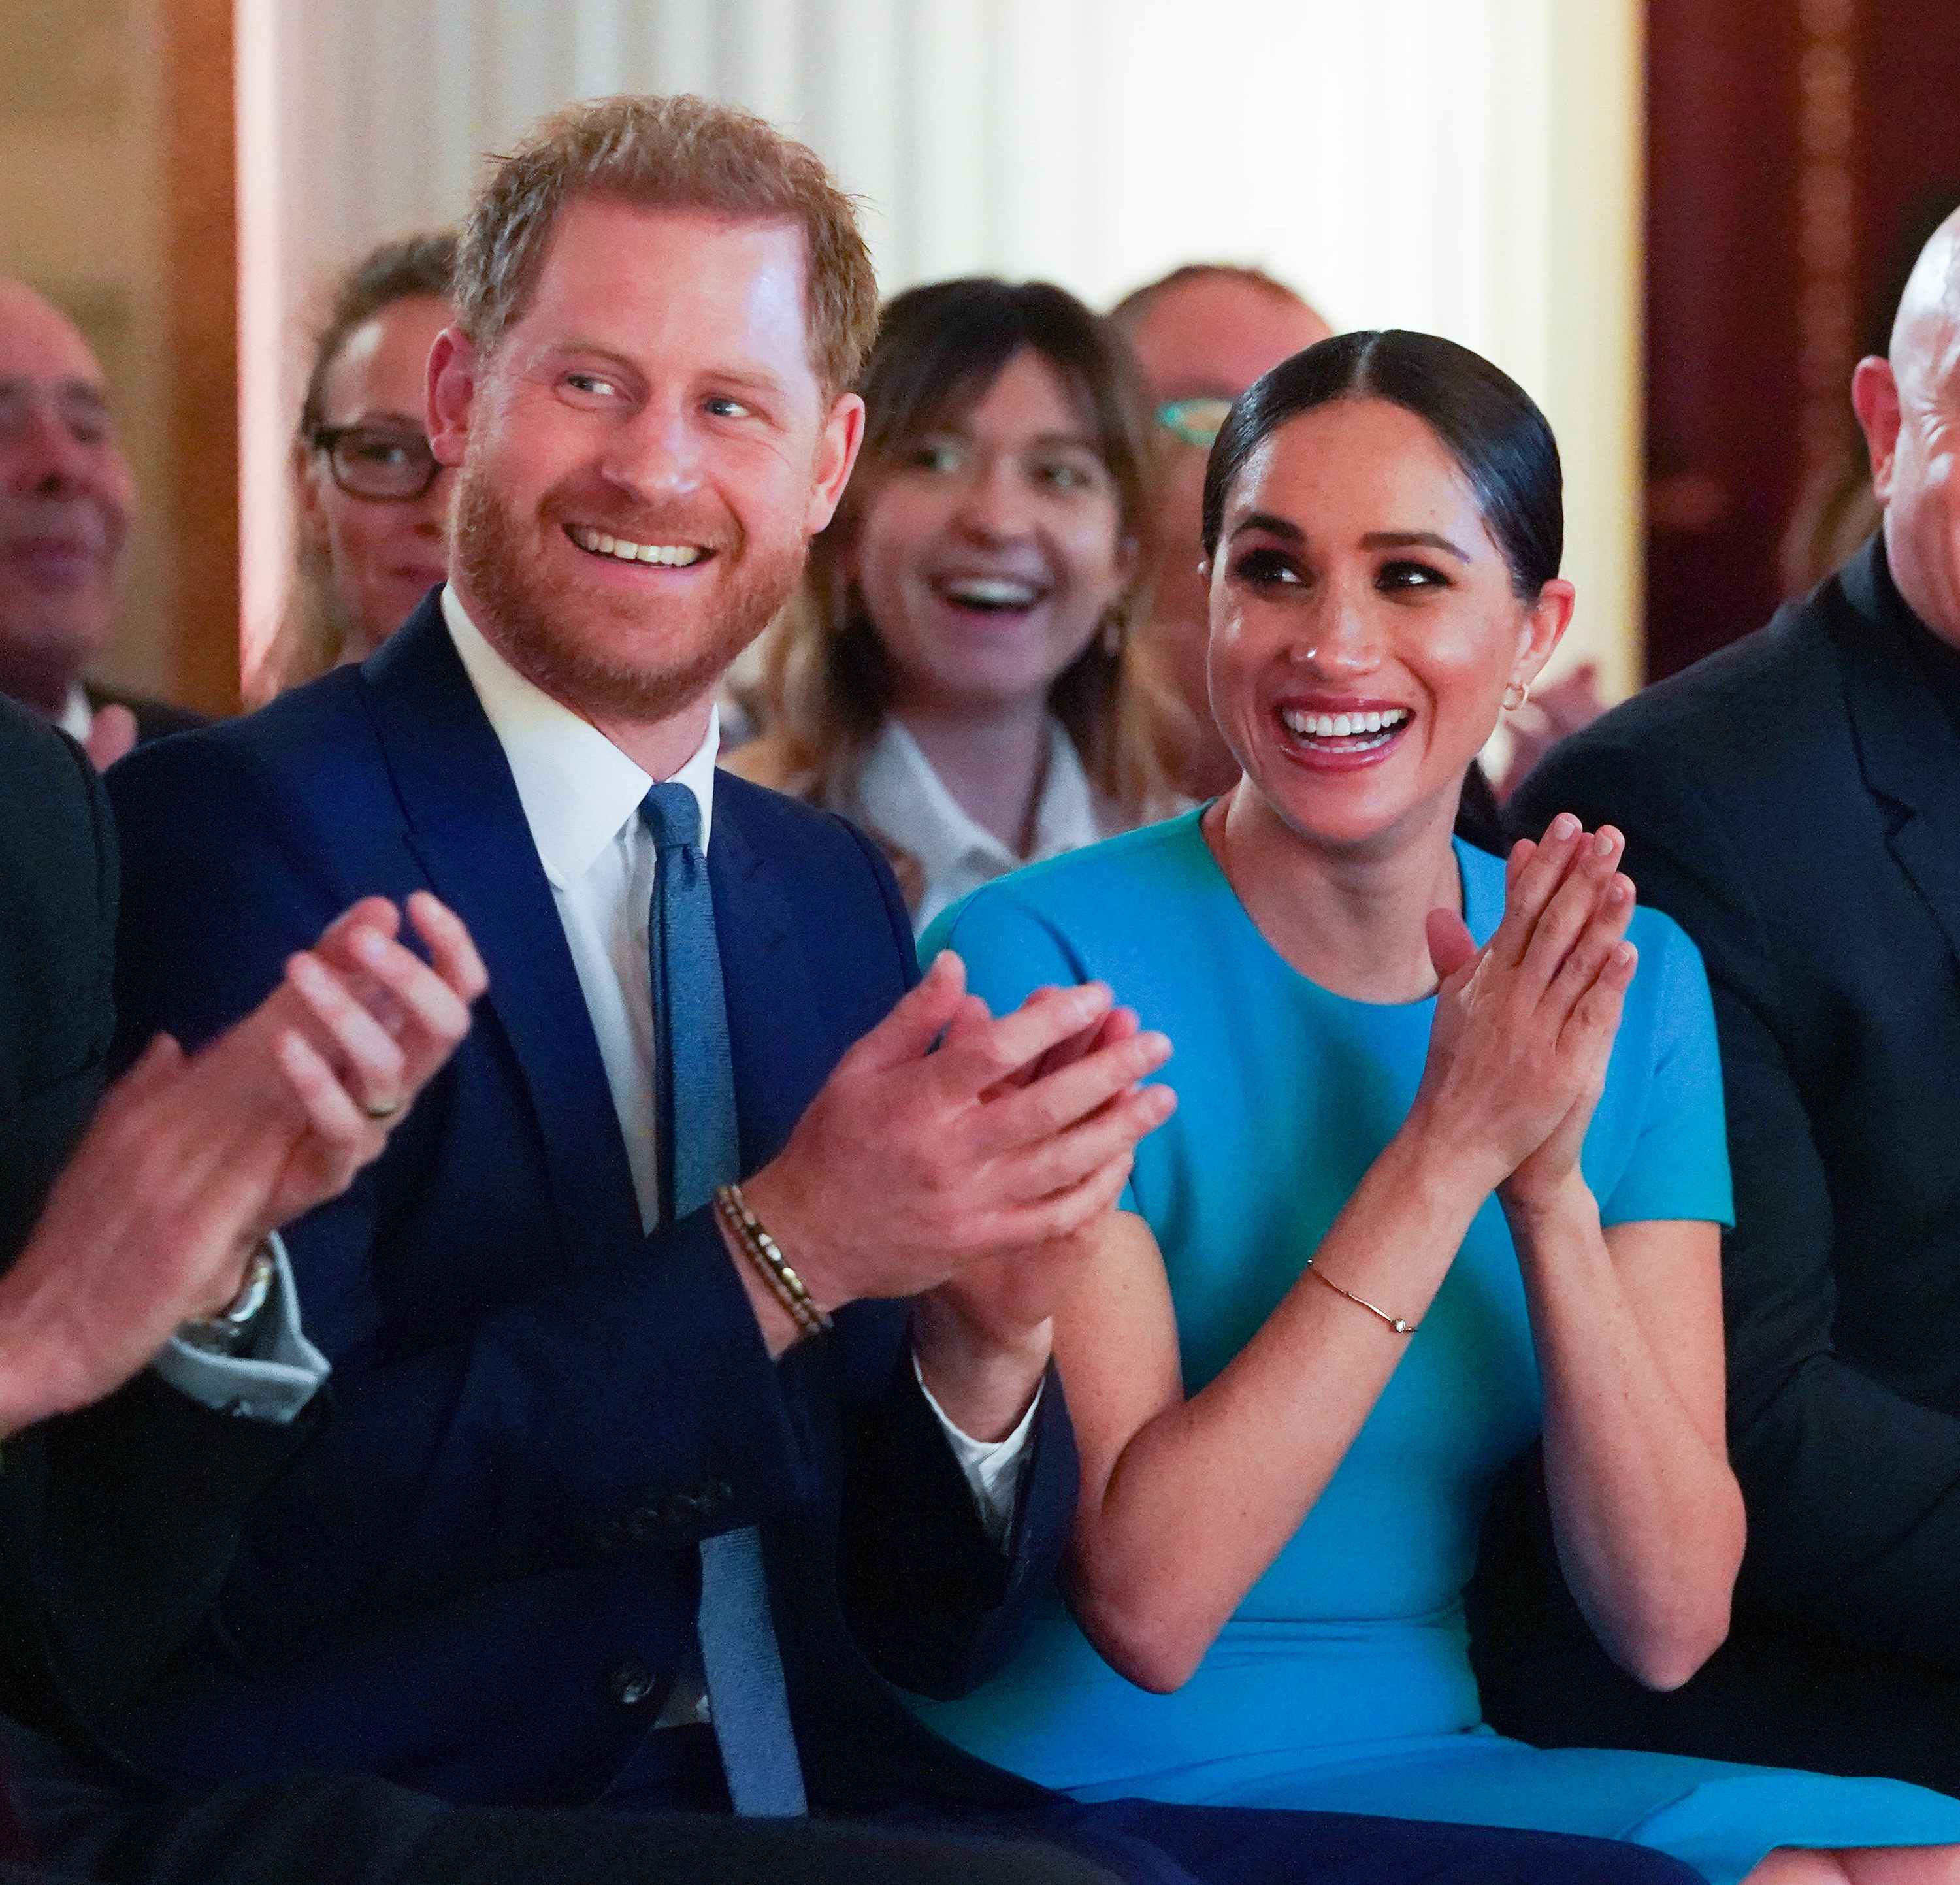 Harry and Meghan applauding and smiling